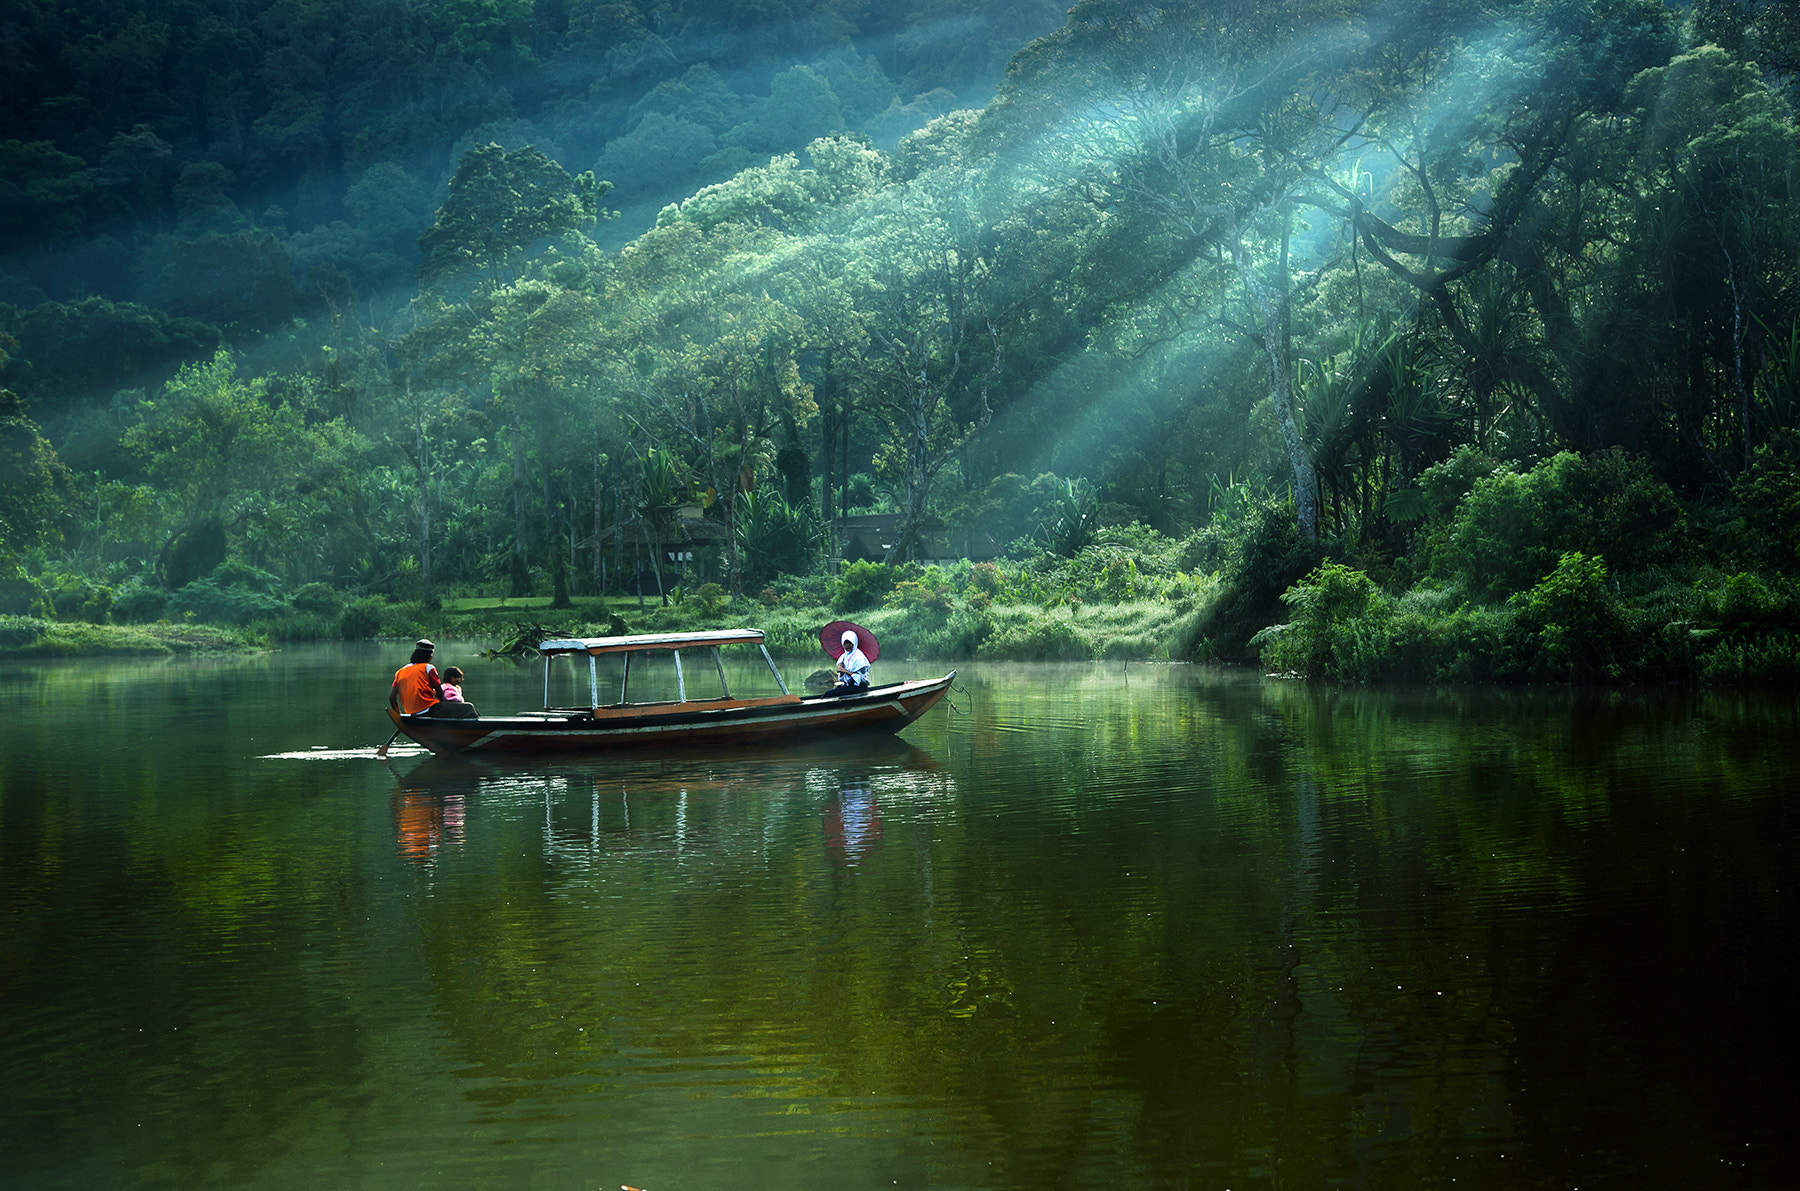 Photograph BOAT TRANSPORT by abe less on 500px